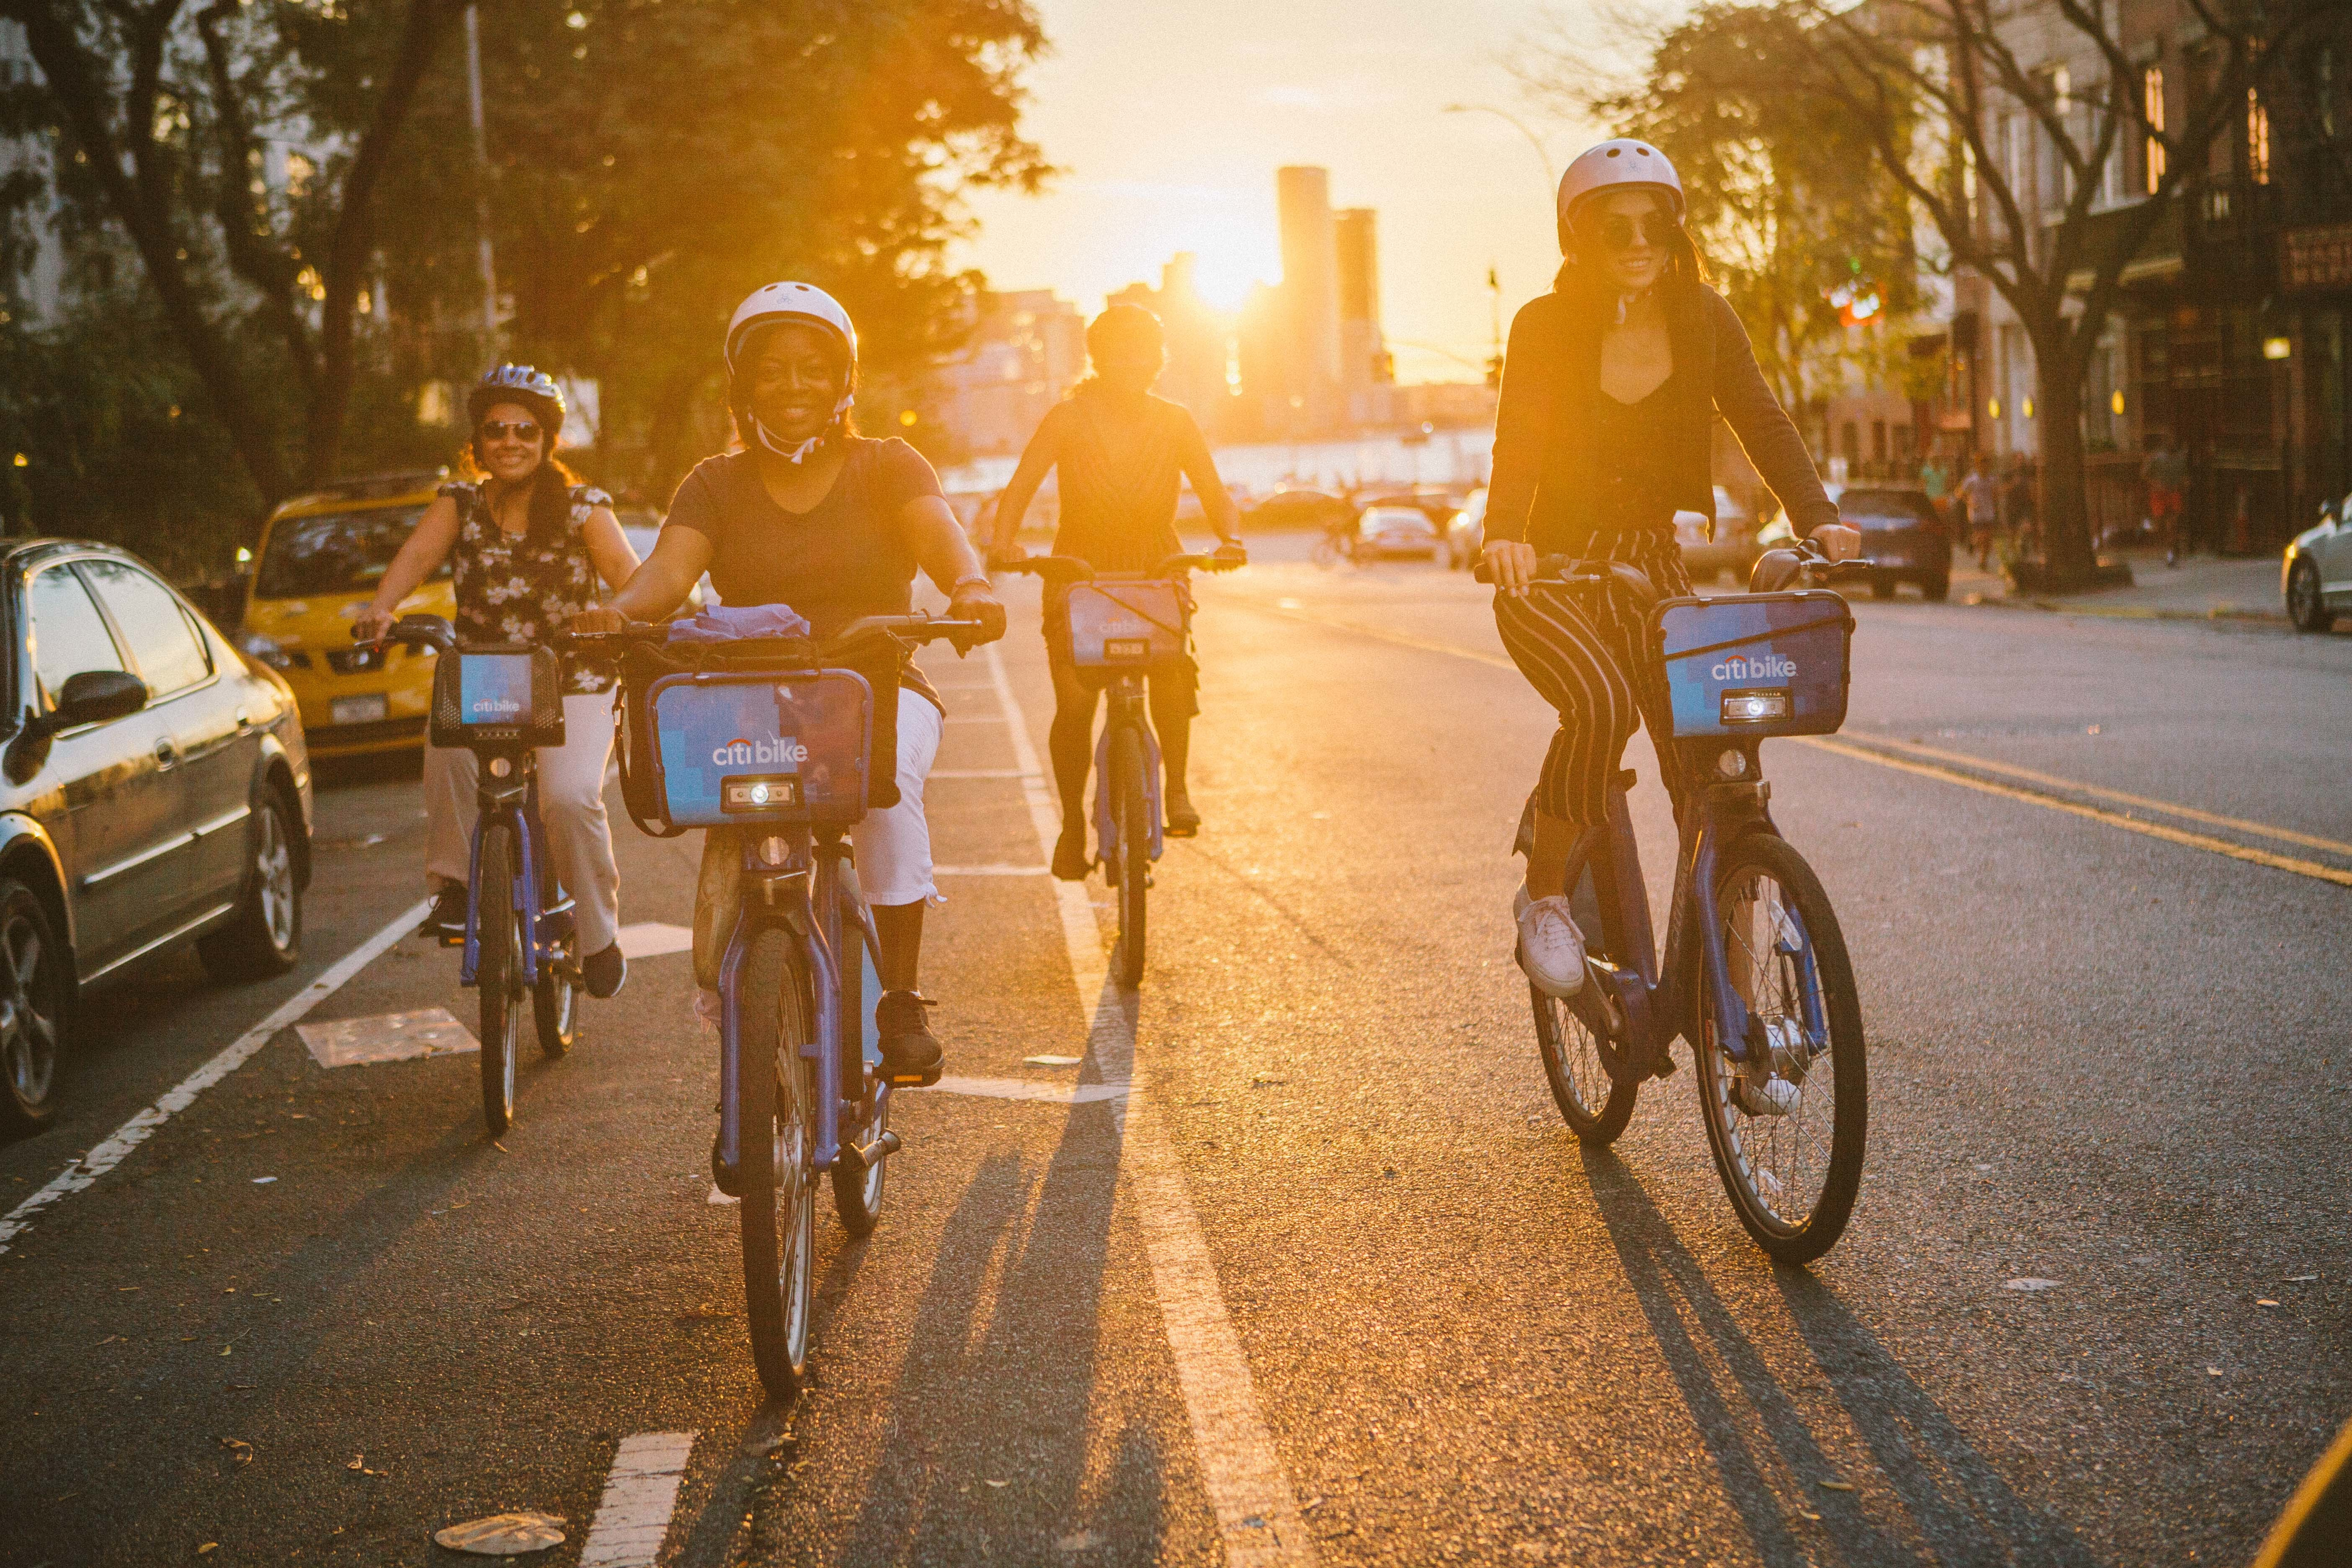 Group Ride & Bike Lane Categories | Citi Bike NYC on hubway map, nyc train map, bronx zip code map, proof of success map, nyc school district map, nyc bus map,